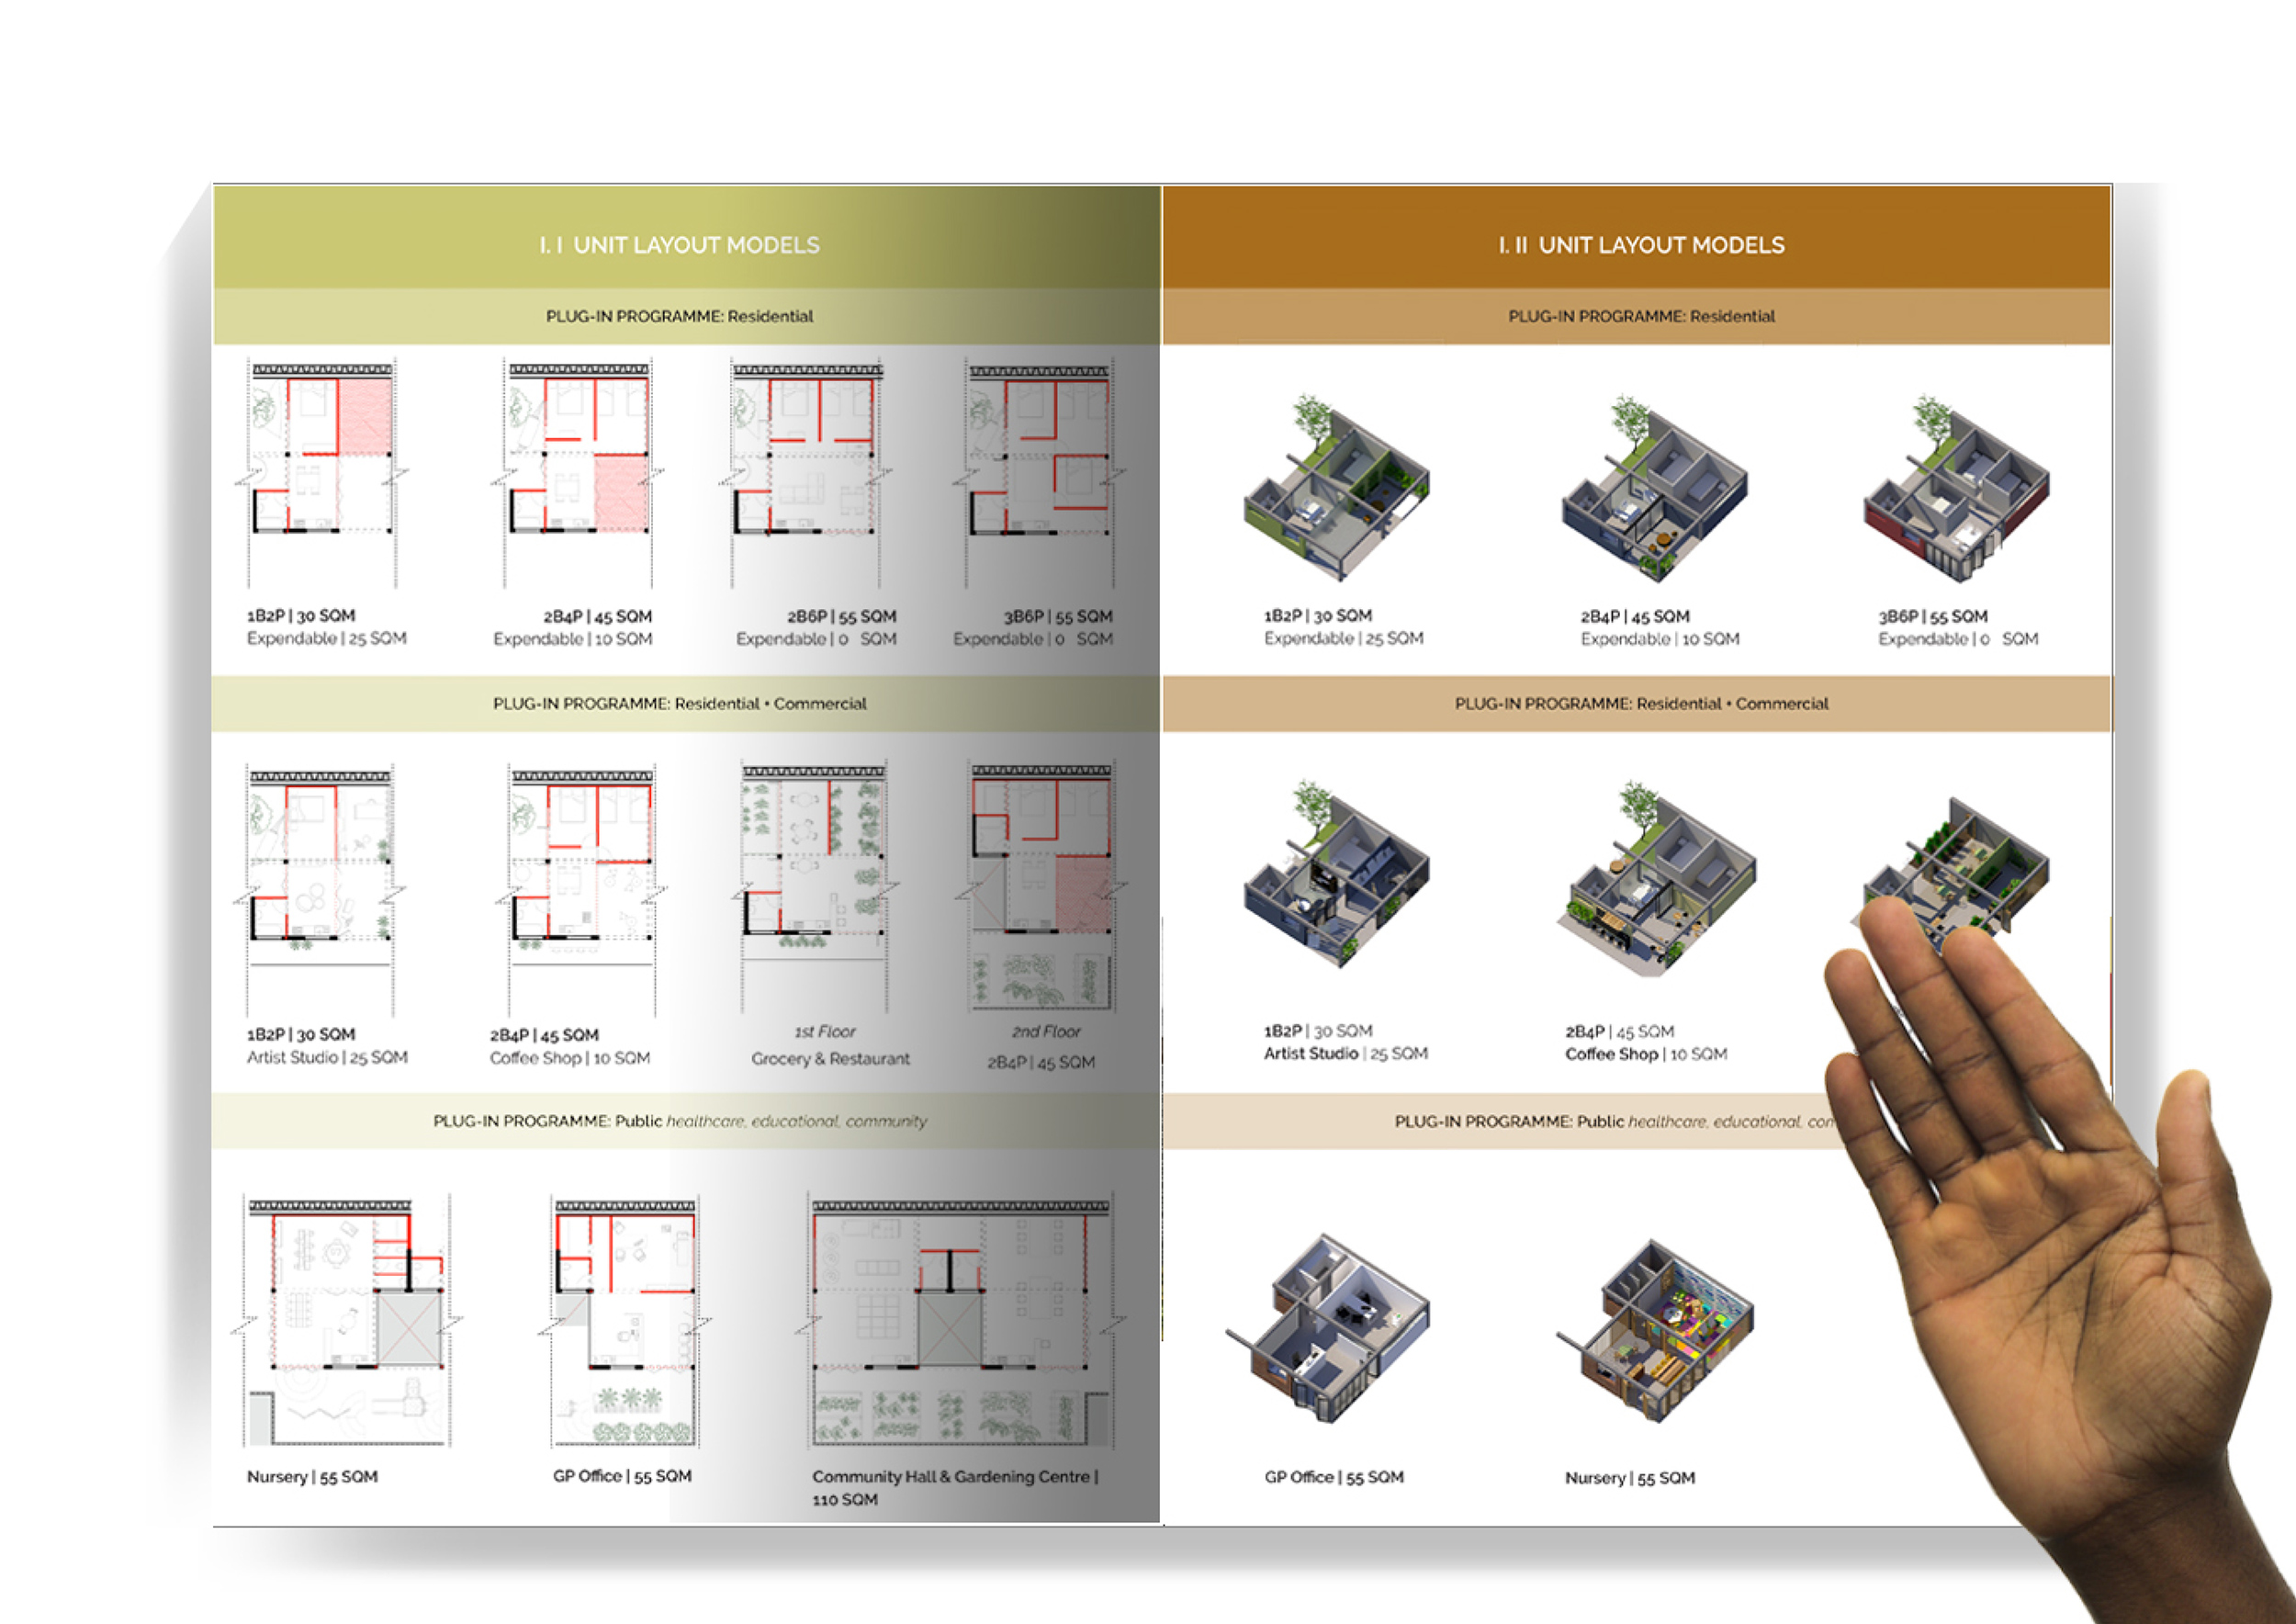 User guide manual: unit layouts and configurations